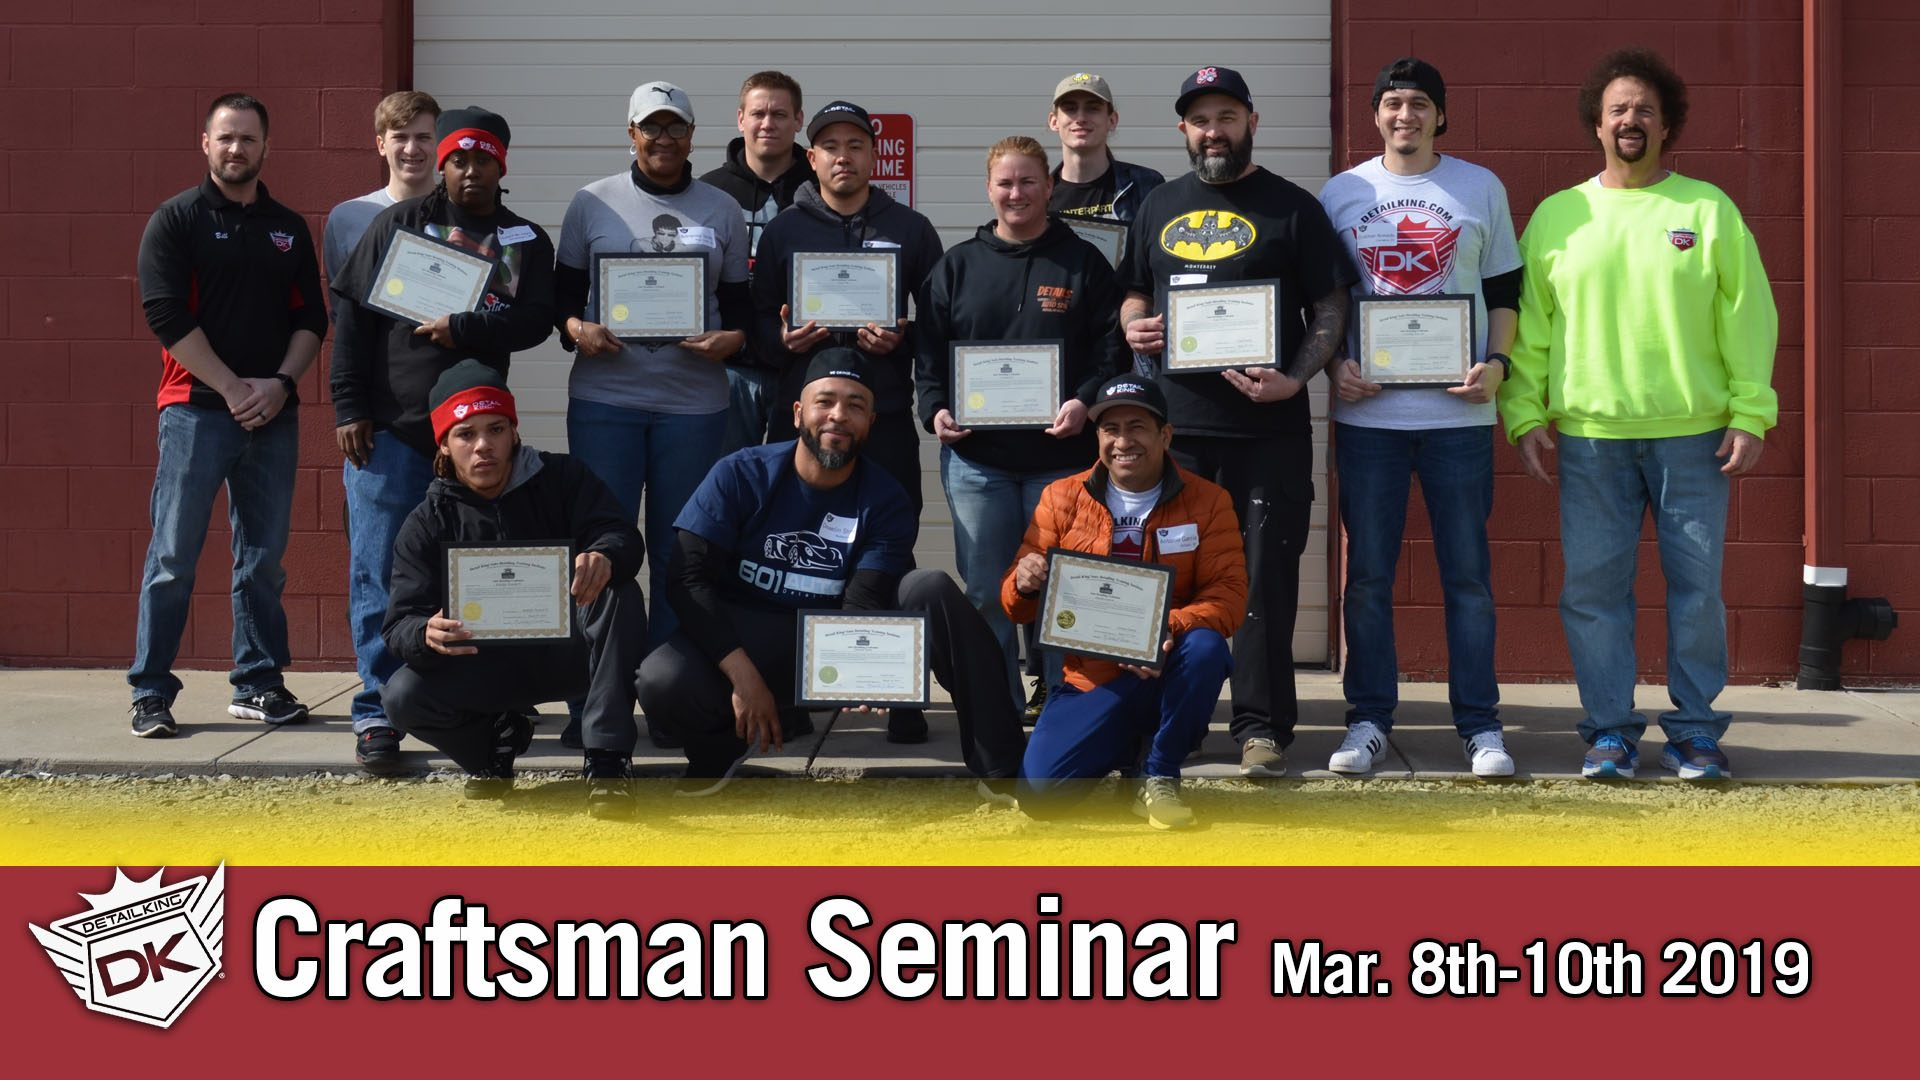 March 8th-10th 2019 Craftsman Auto Detailing Training Seminar